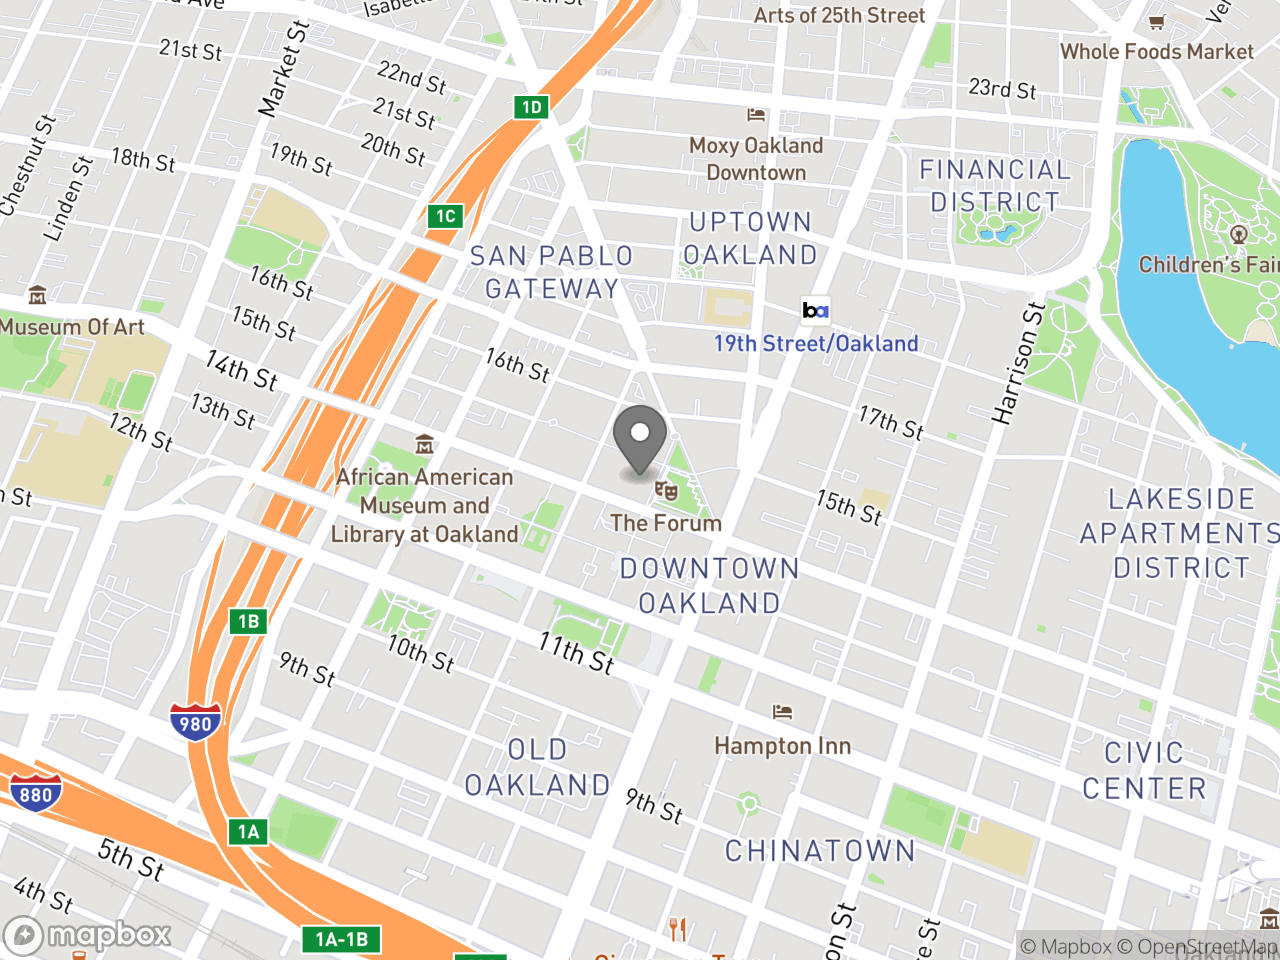 Map location for Oakland Civic Design Lab, located at 1 Frank H Ogawa Plaza in Oakland, CA 94612